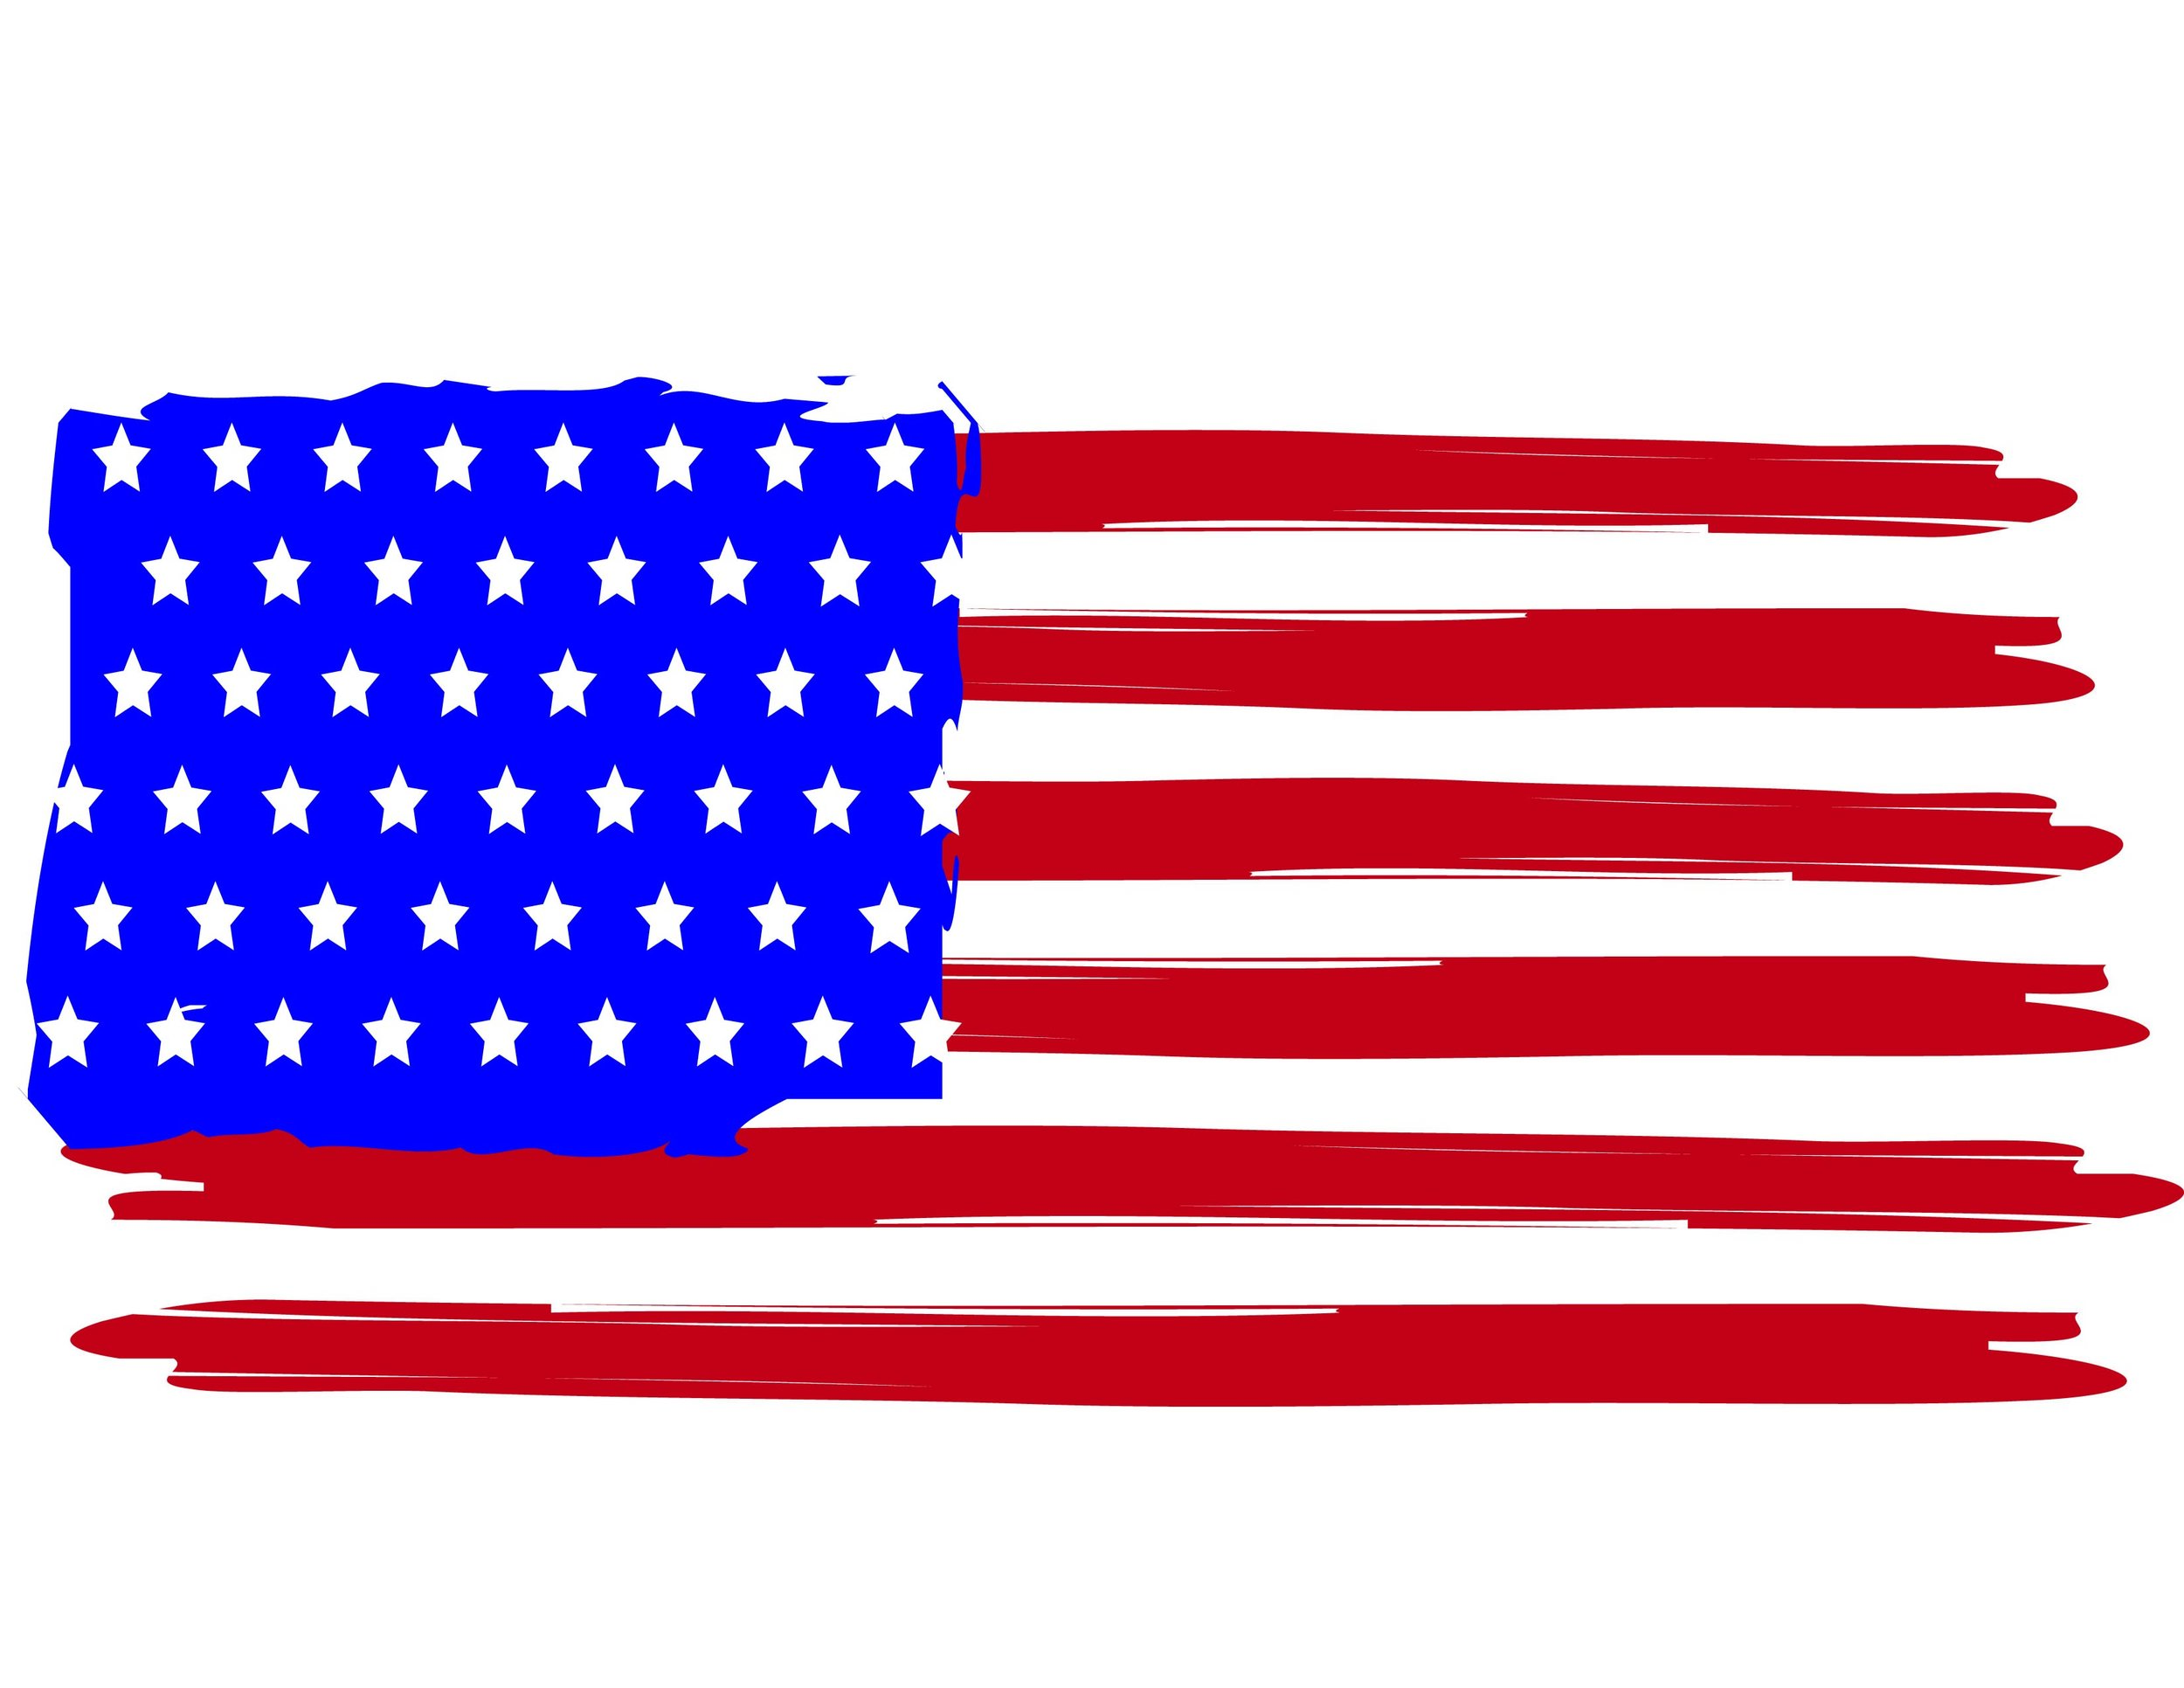 American Flag Painted.jpg